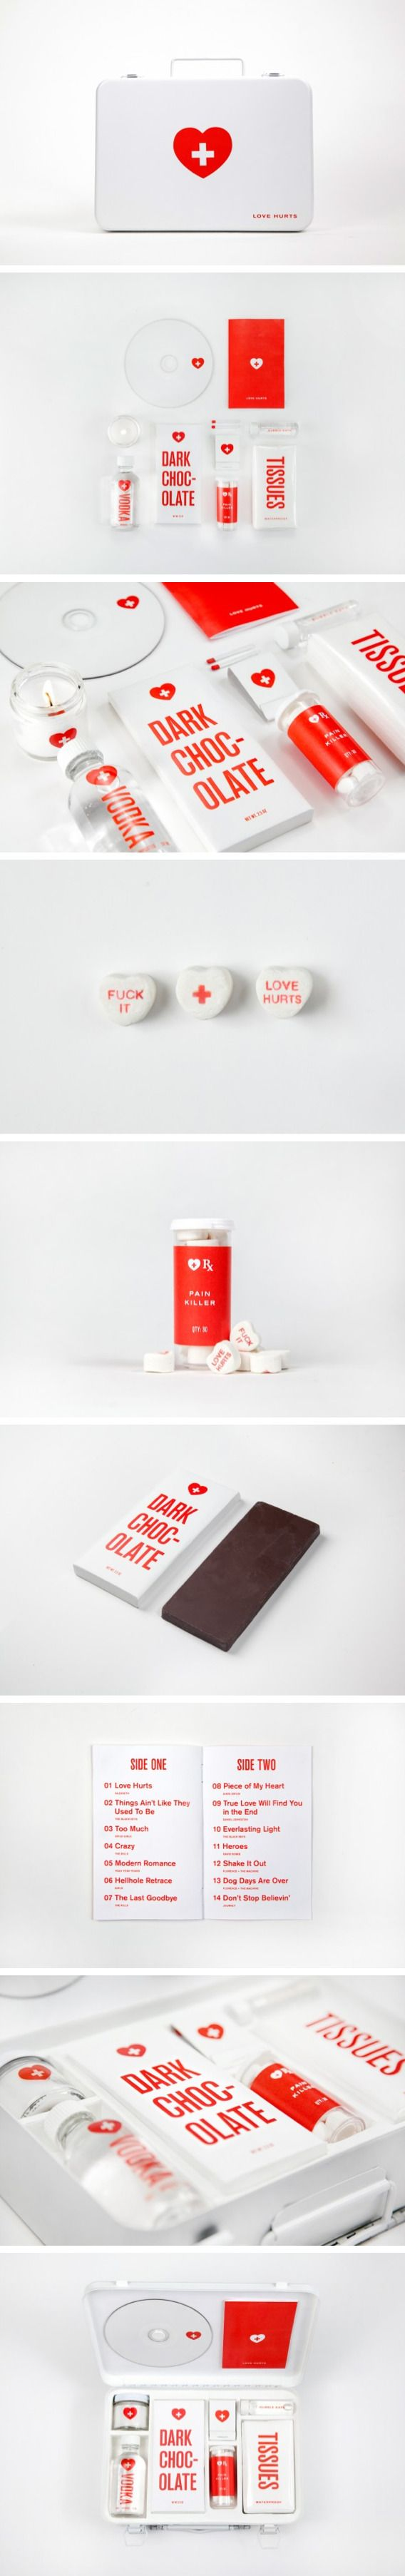 Love Hurts. A potentially useful packaging concept by Melanie Chernock